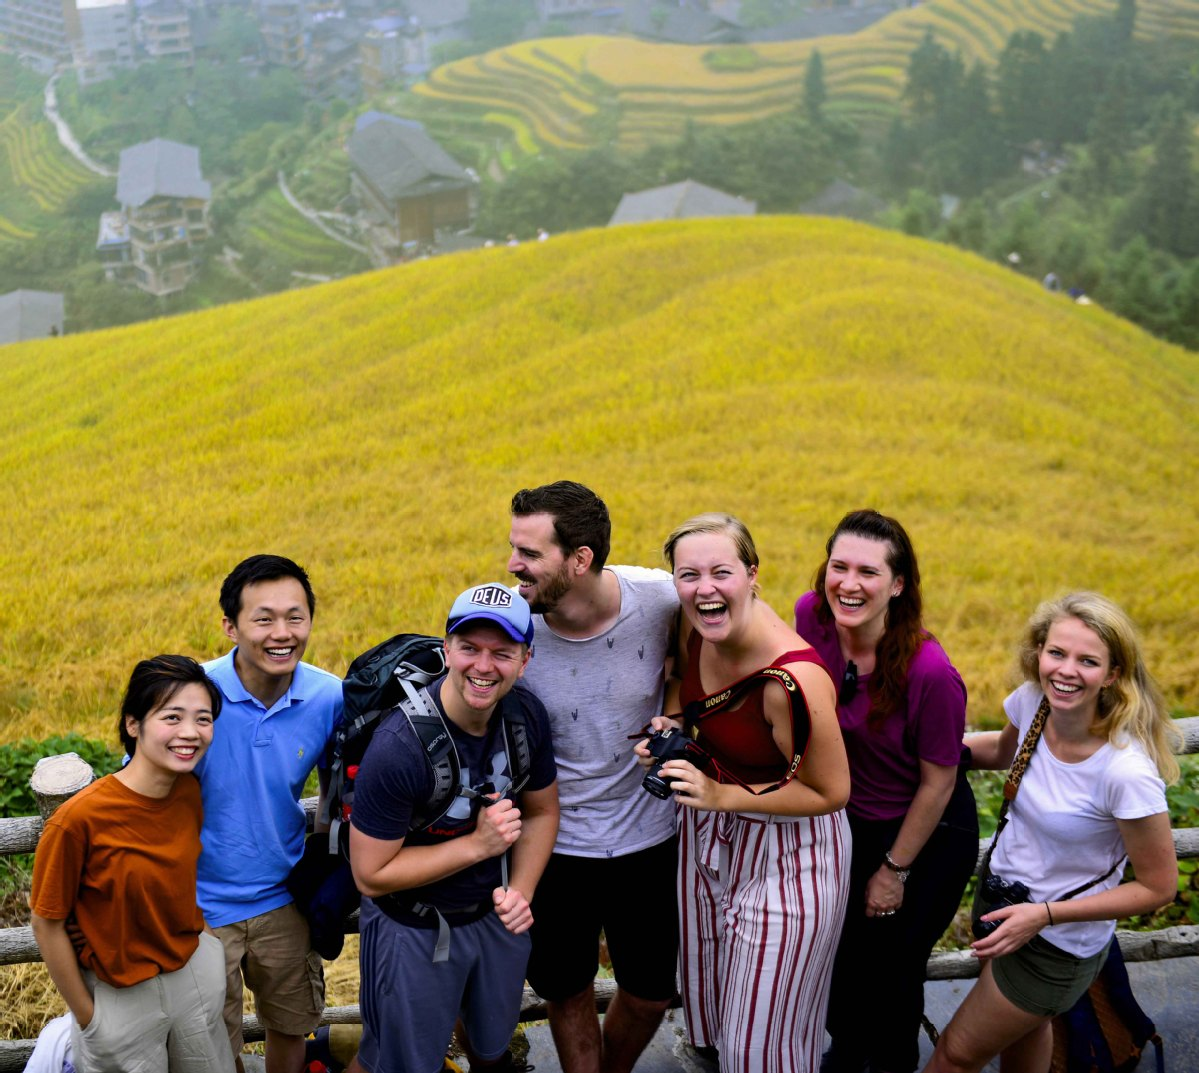 South China's golden rice paddies attract tourists